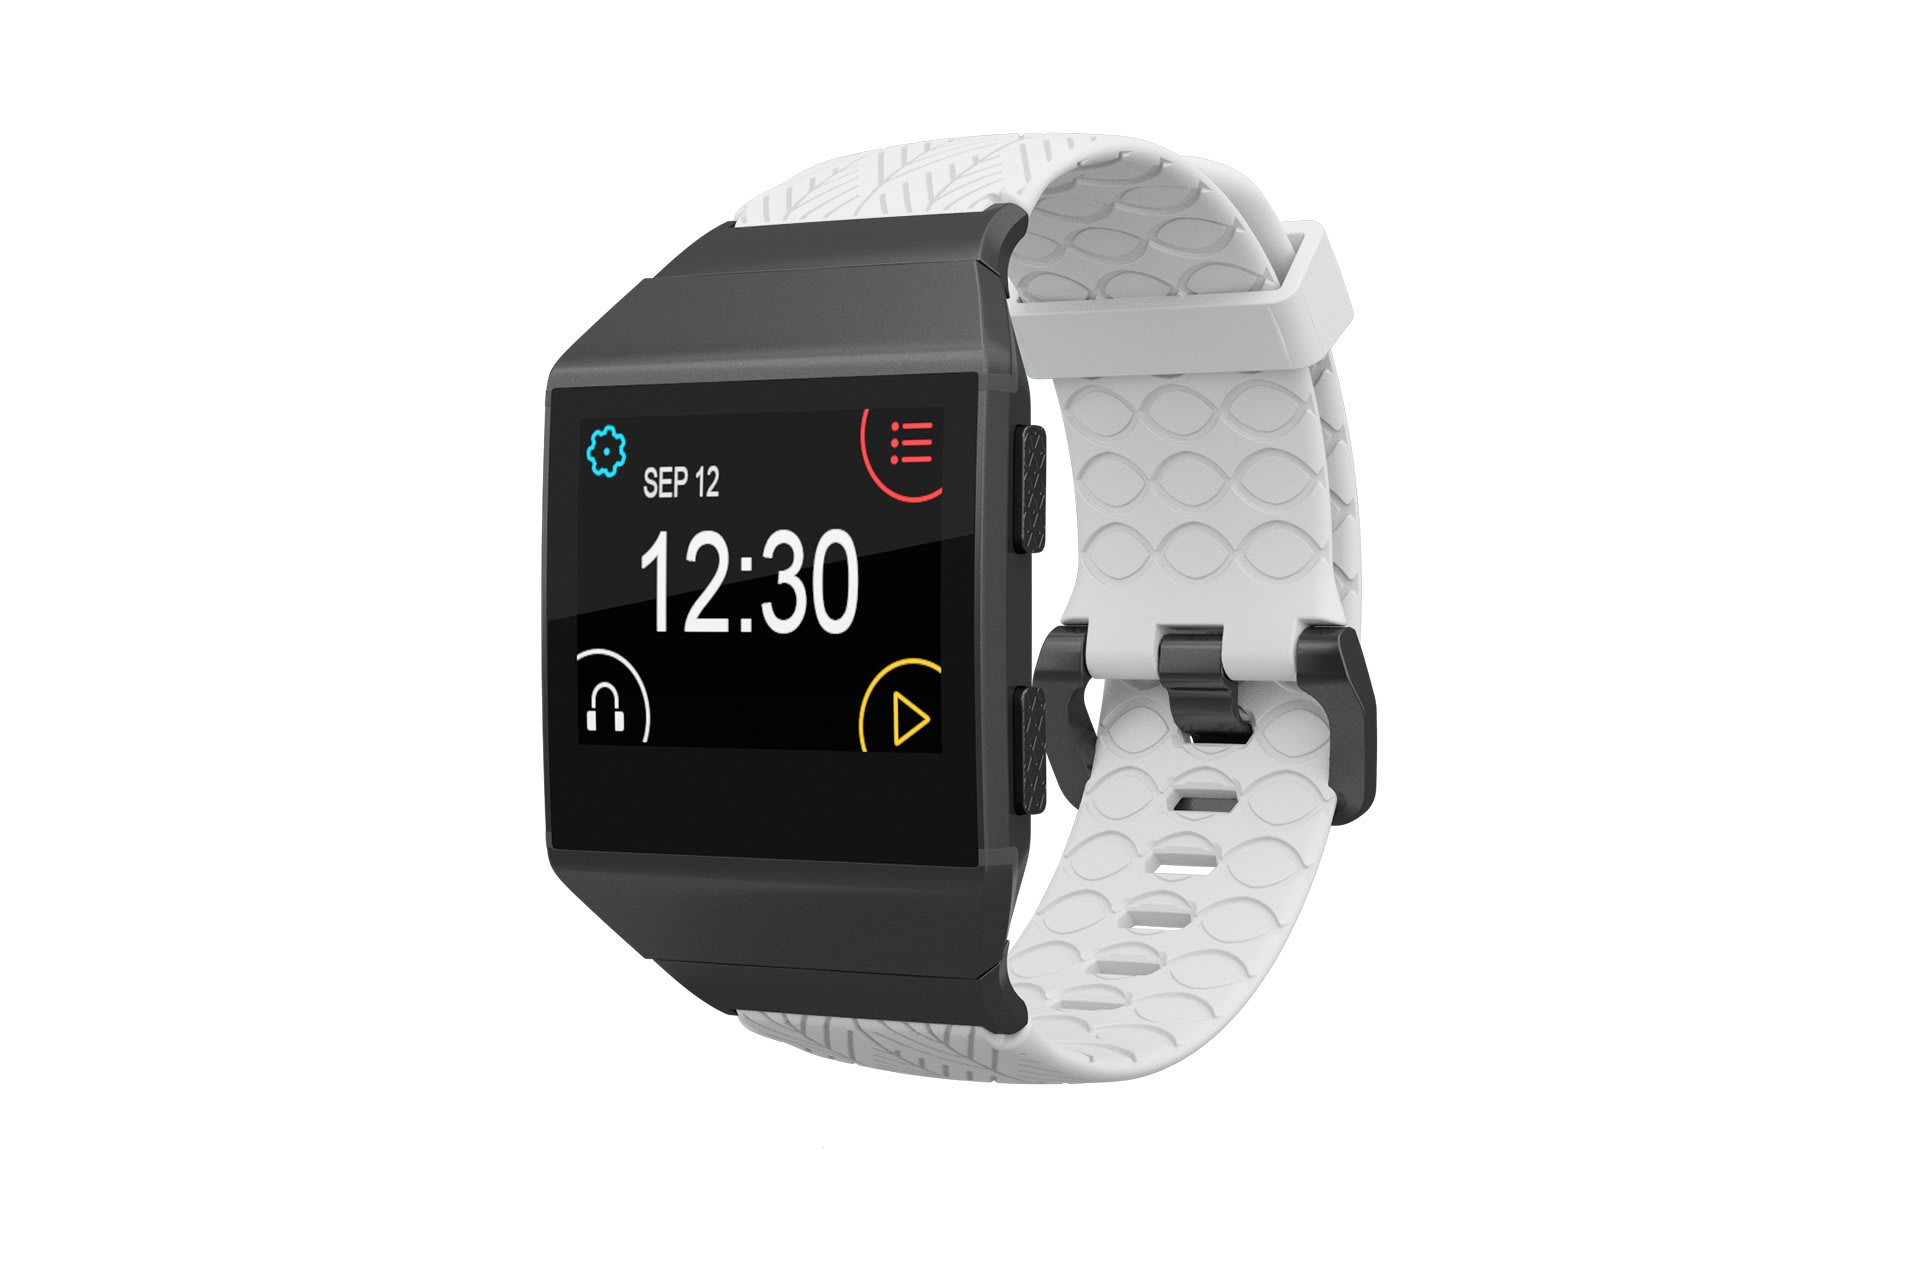 Fitbit Watch Band Ionic Dimension Arrows White with gray hardware viewed front on